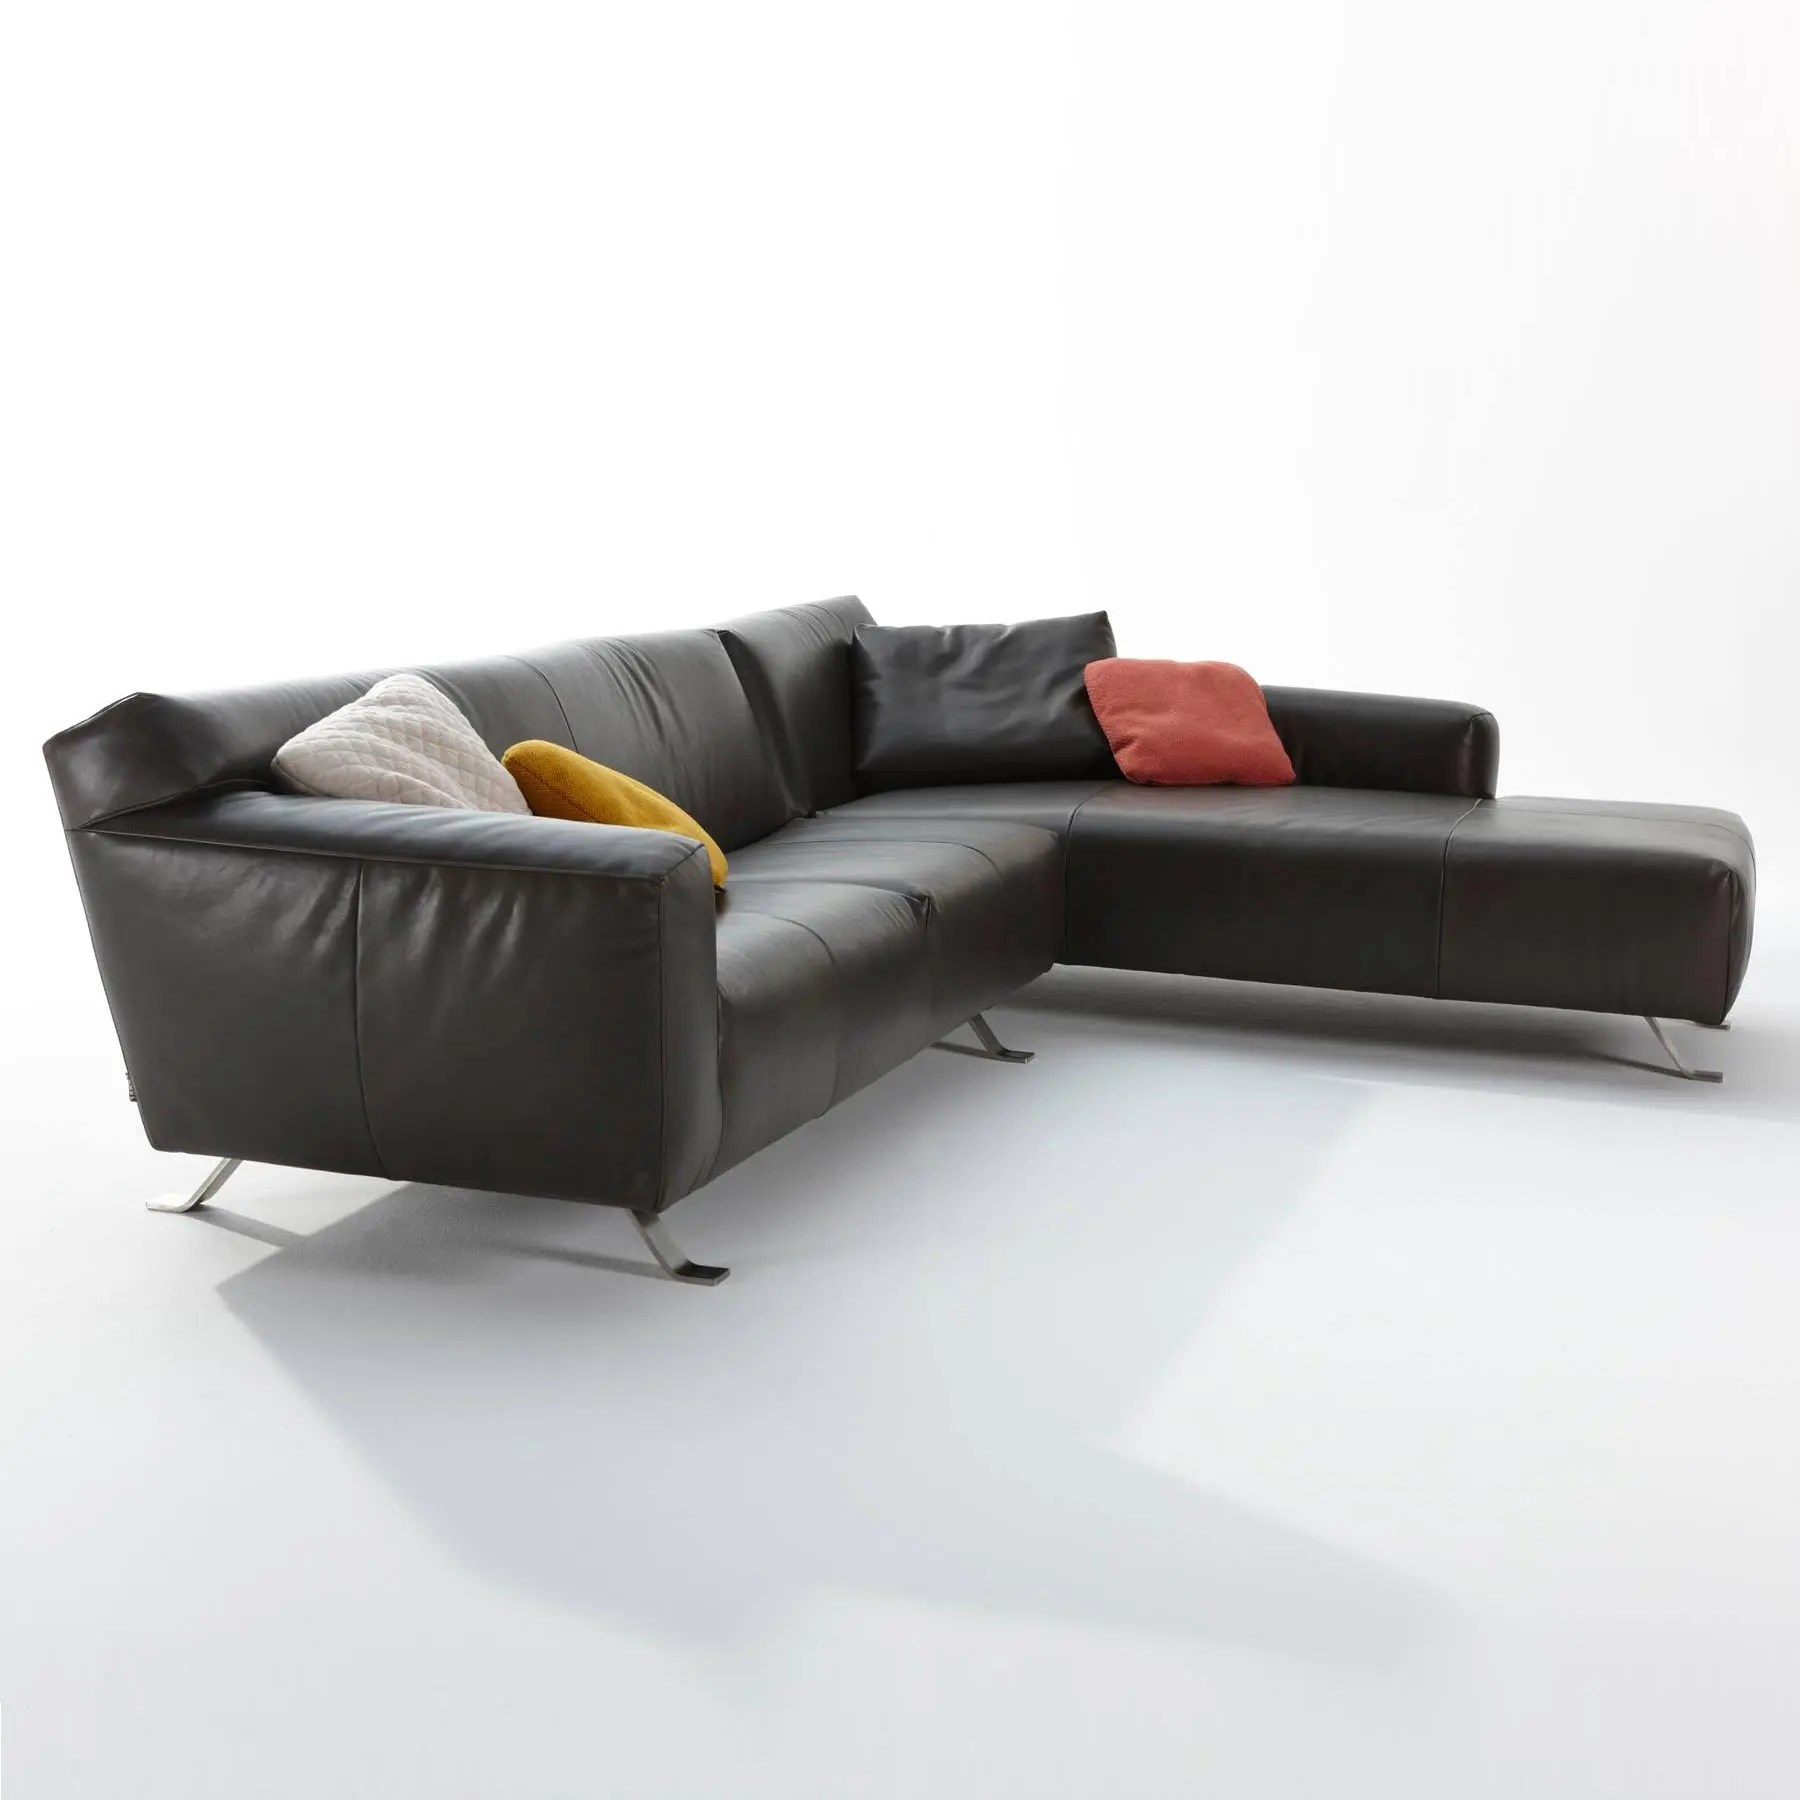 Sofa With Chaise Lounge Santiago Sofa W Chaise Lounge Modern Intentions Shop